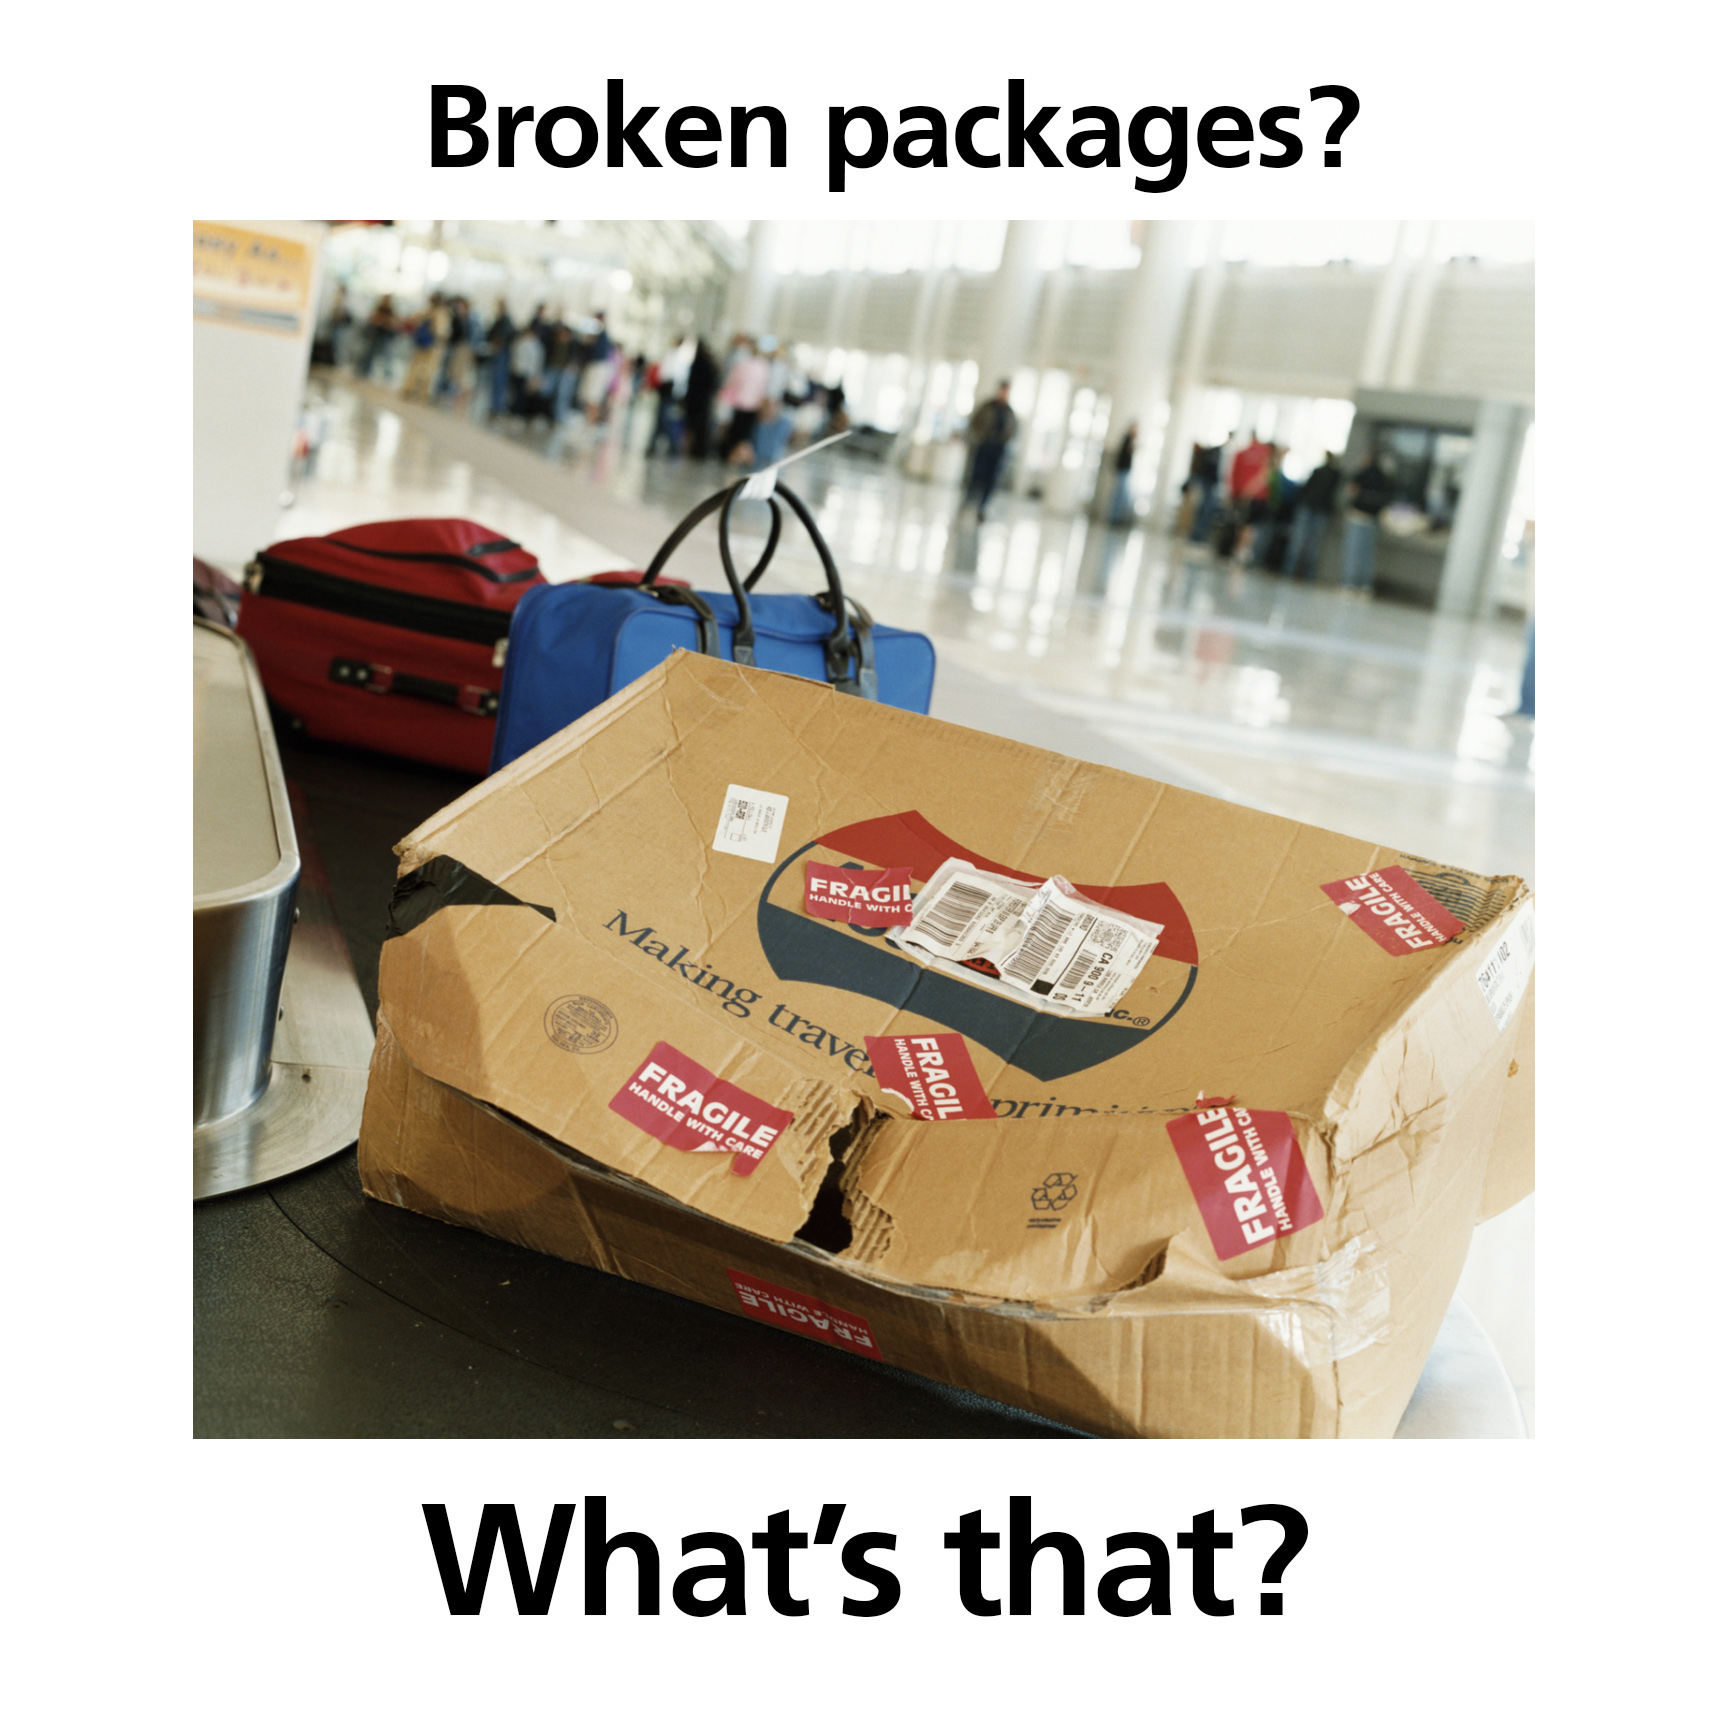 brokenpackage